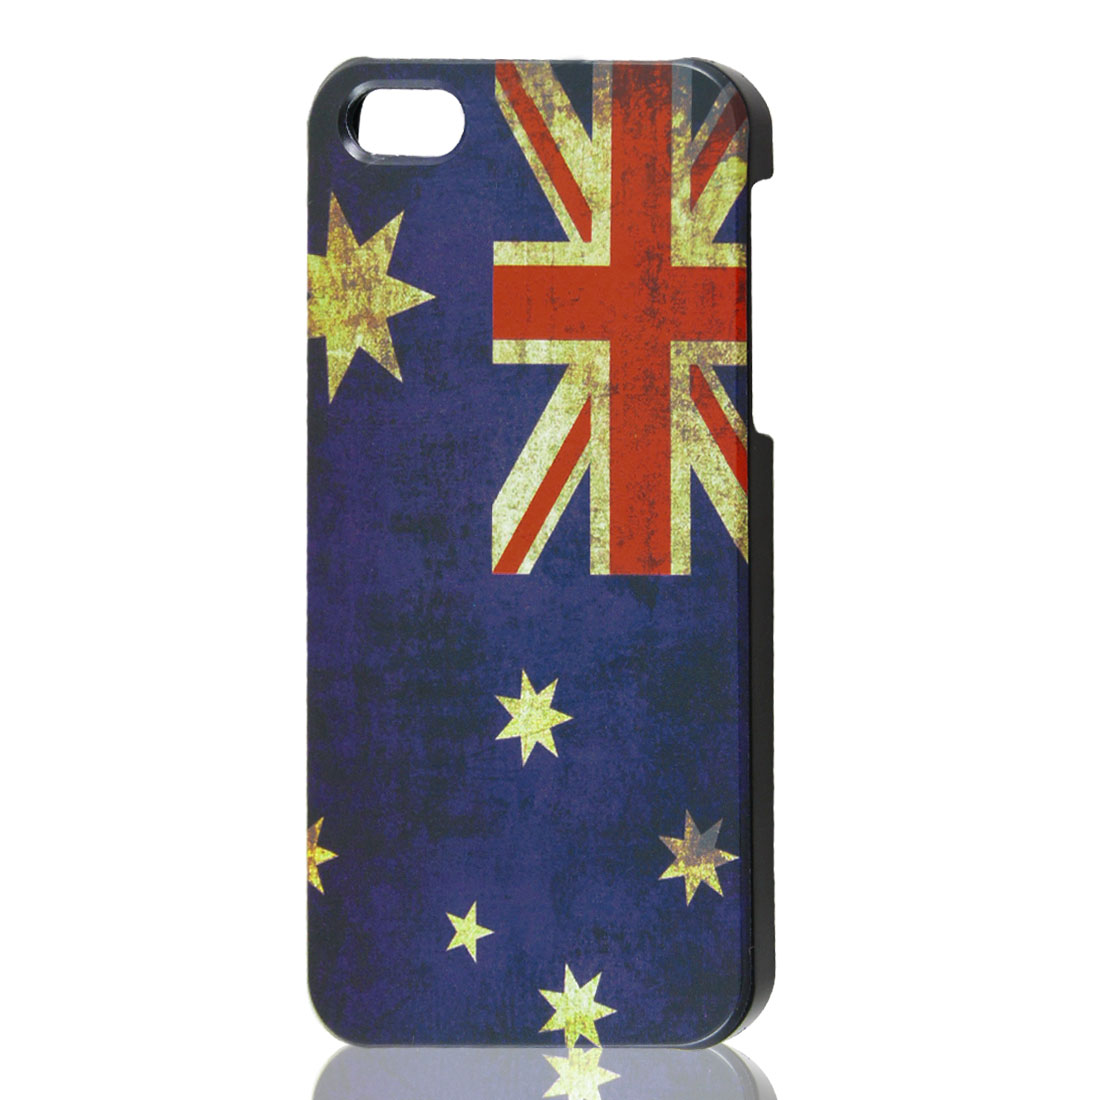 Retro Style Australia National Flag Hard Case Back Cover Protector for iPhone 5G